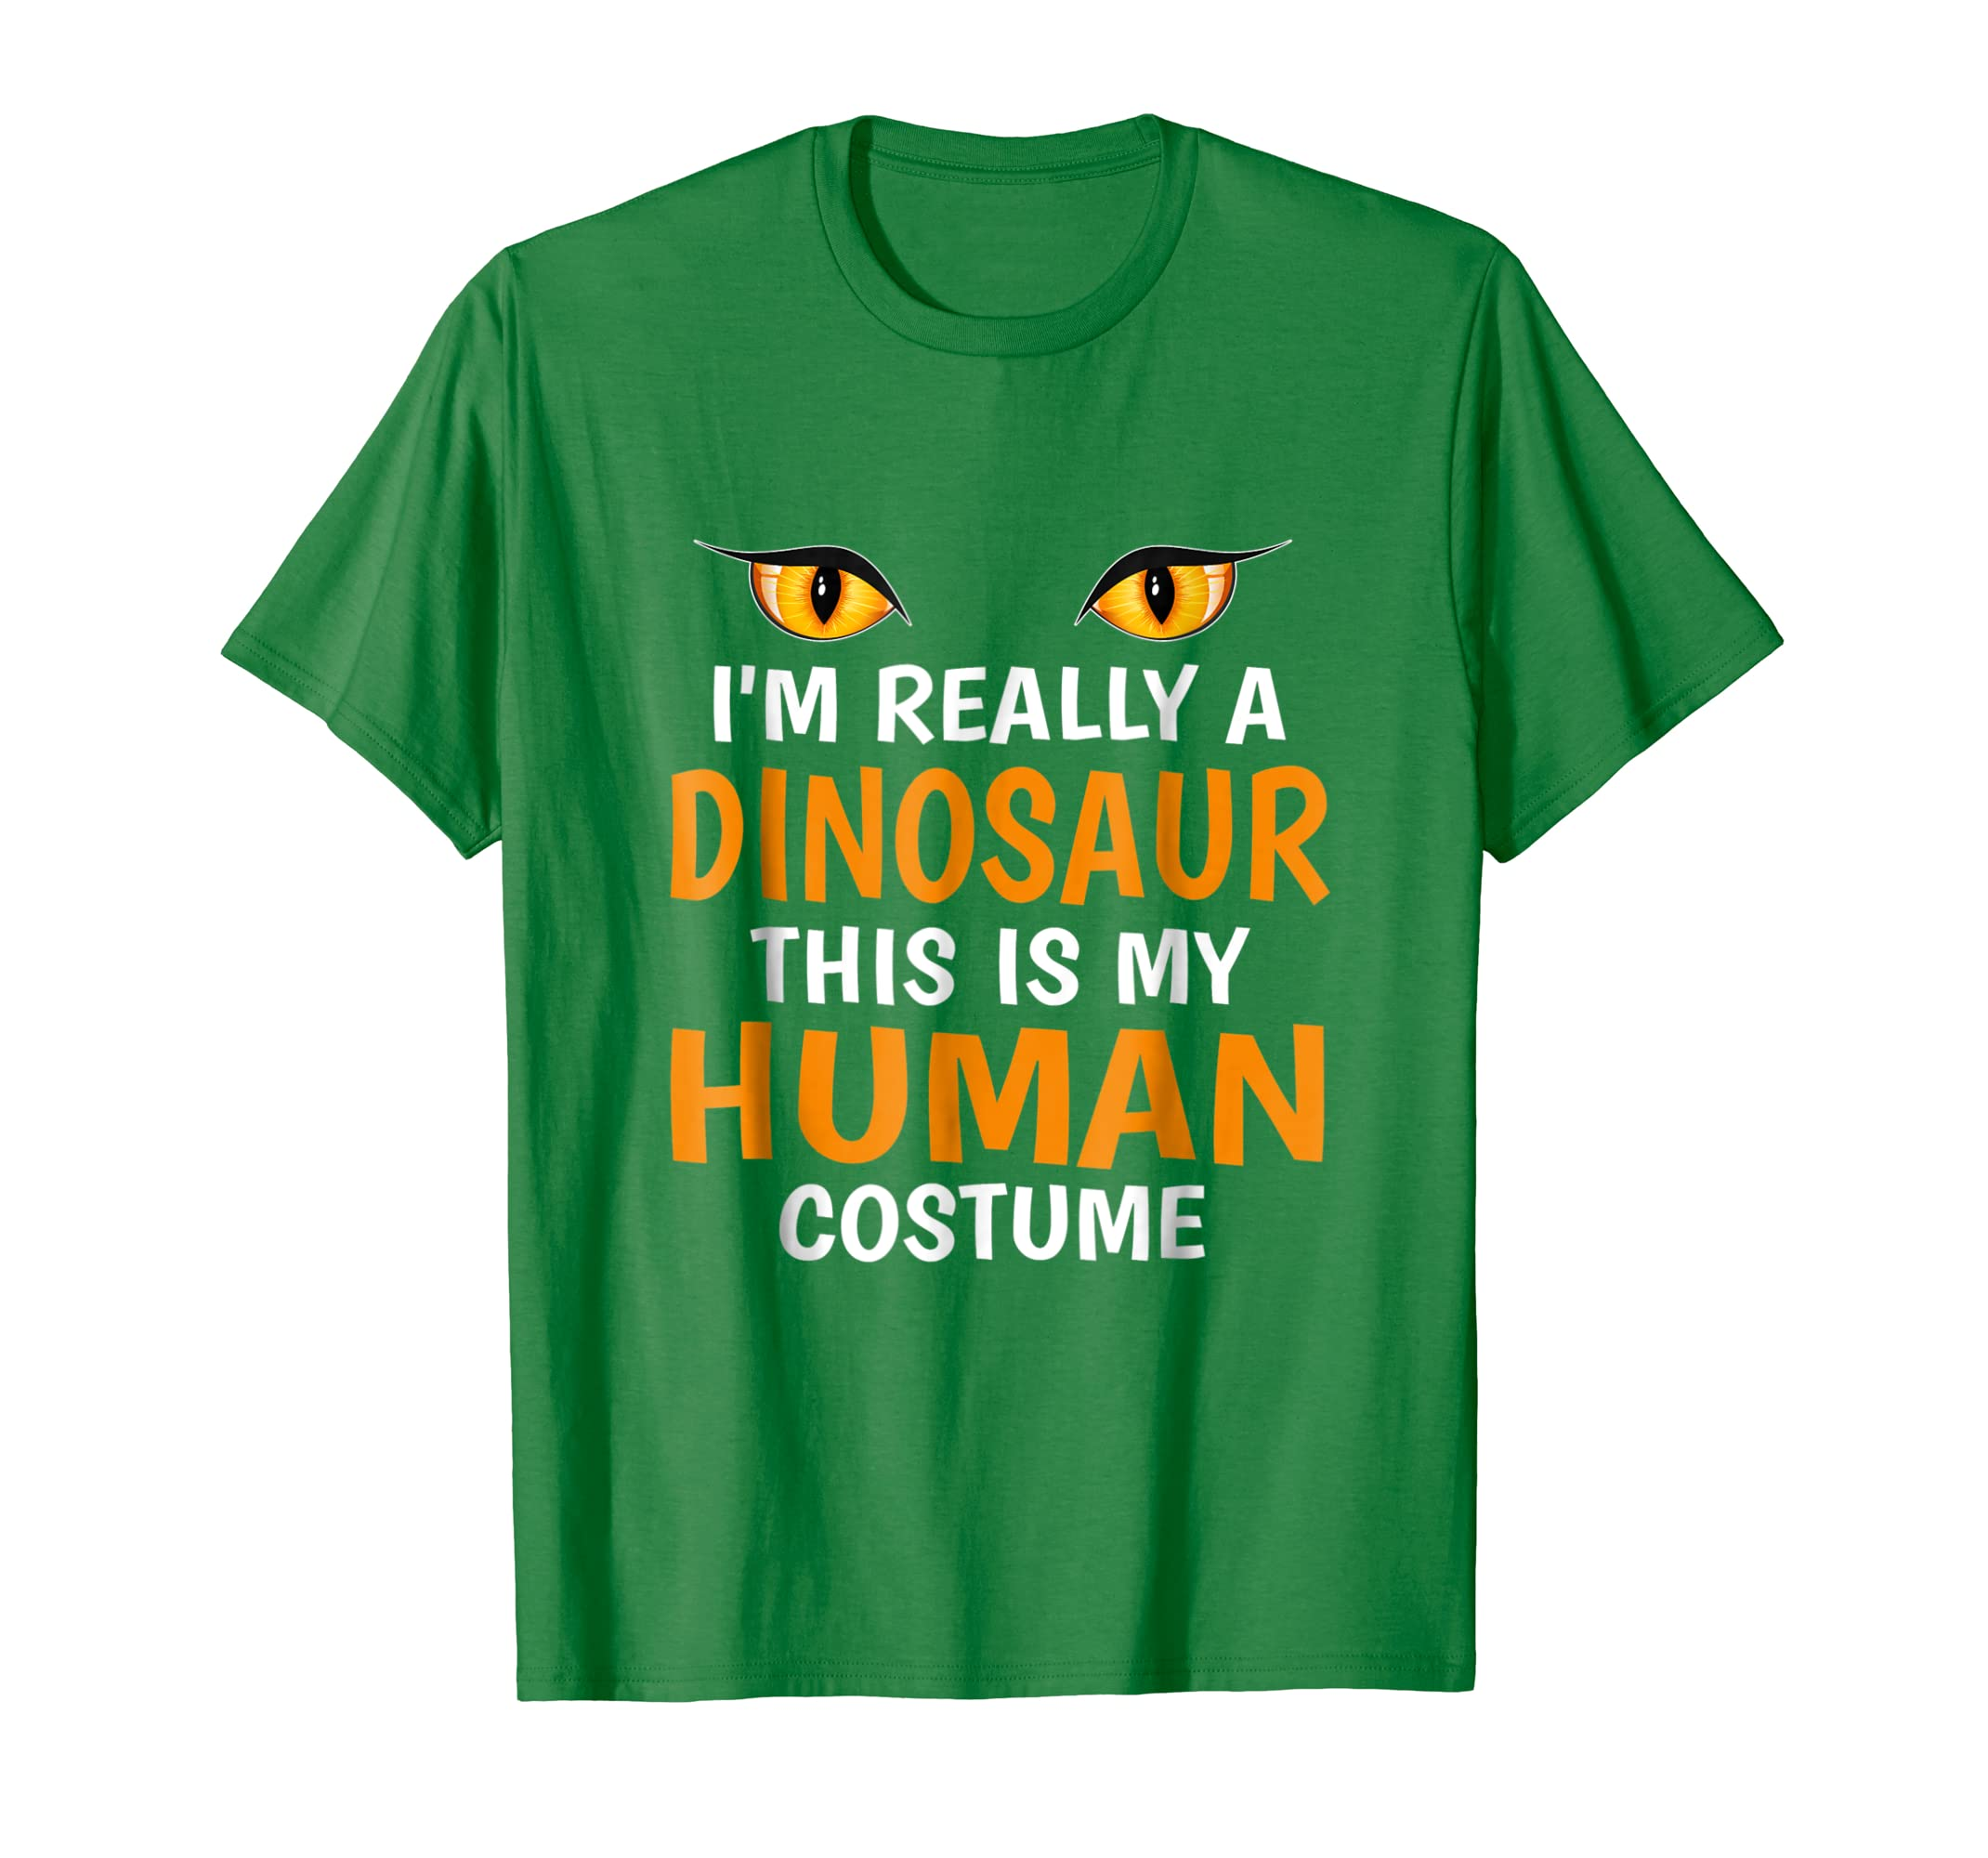 I'm Really a DINOSAUR This is my Human Costume shirt-4LVS